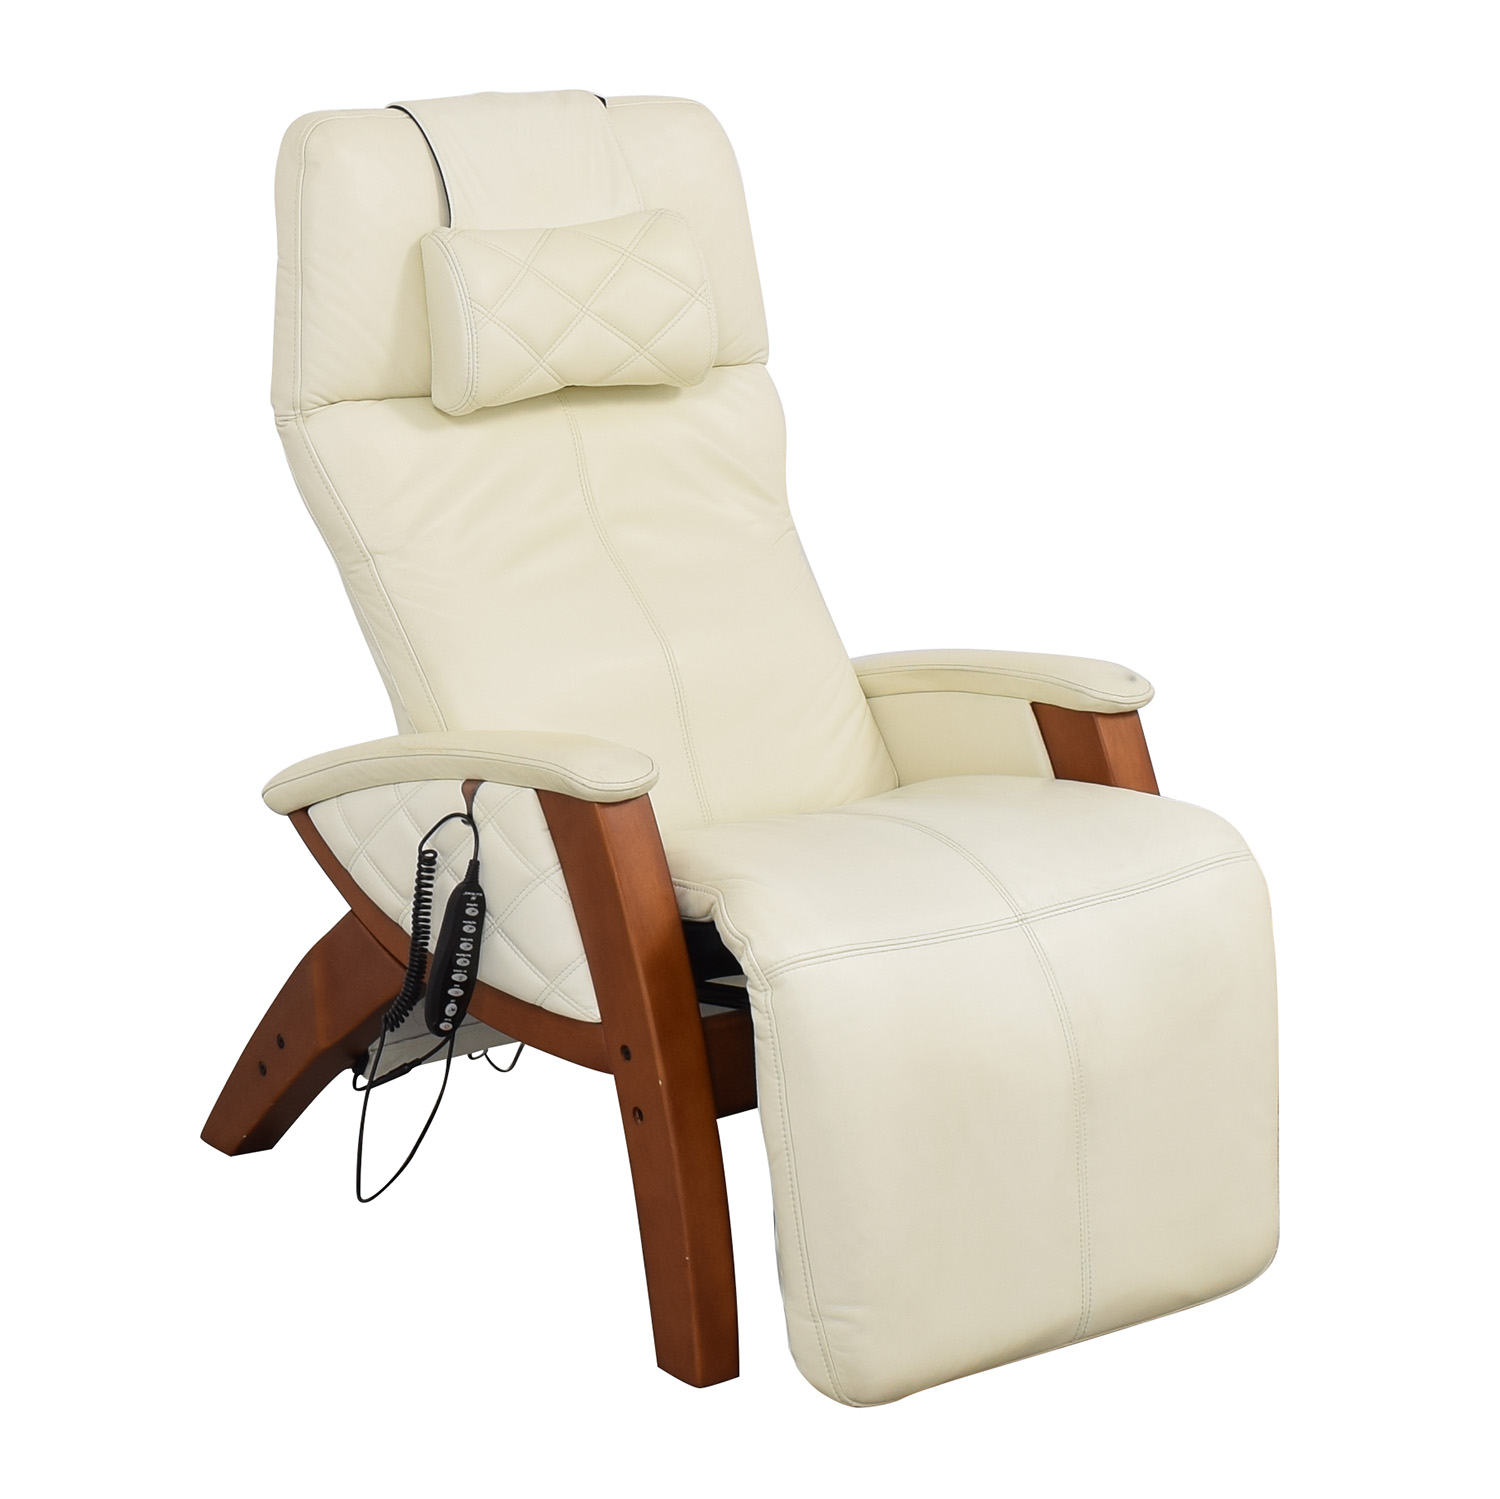 Relax The Back Relax The Back Electro Lounge Chair dimensions